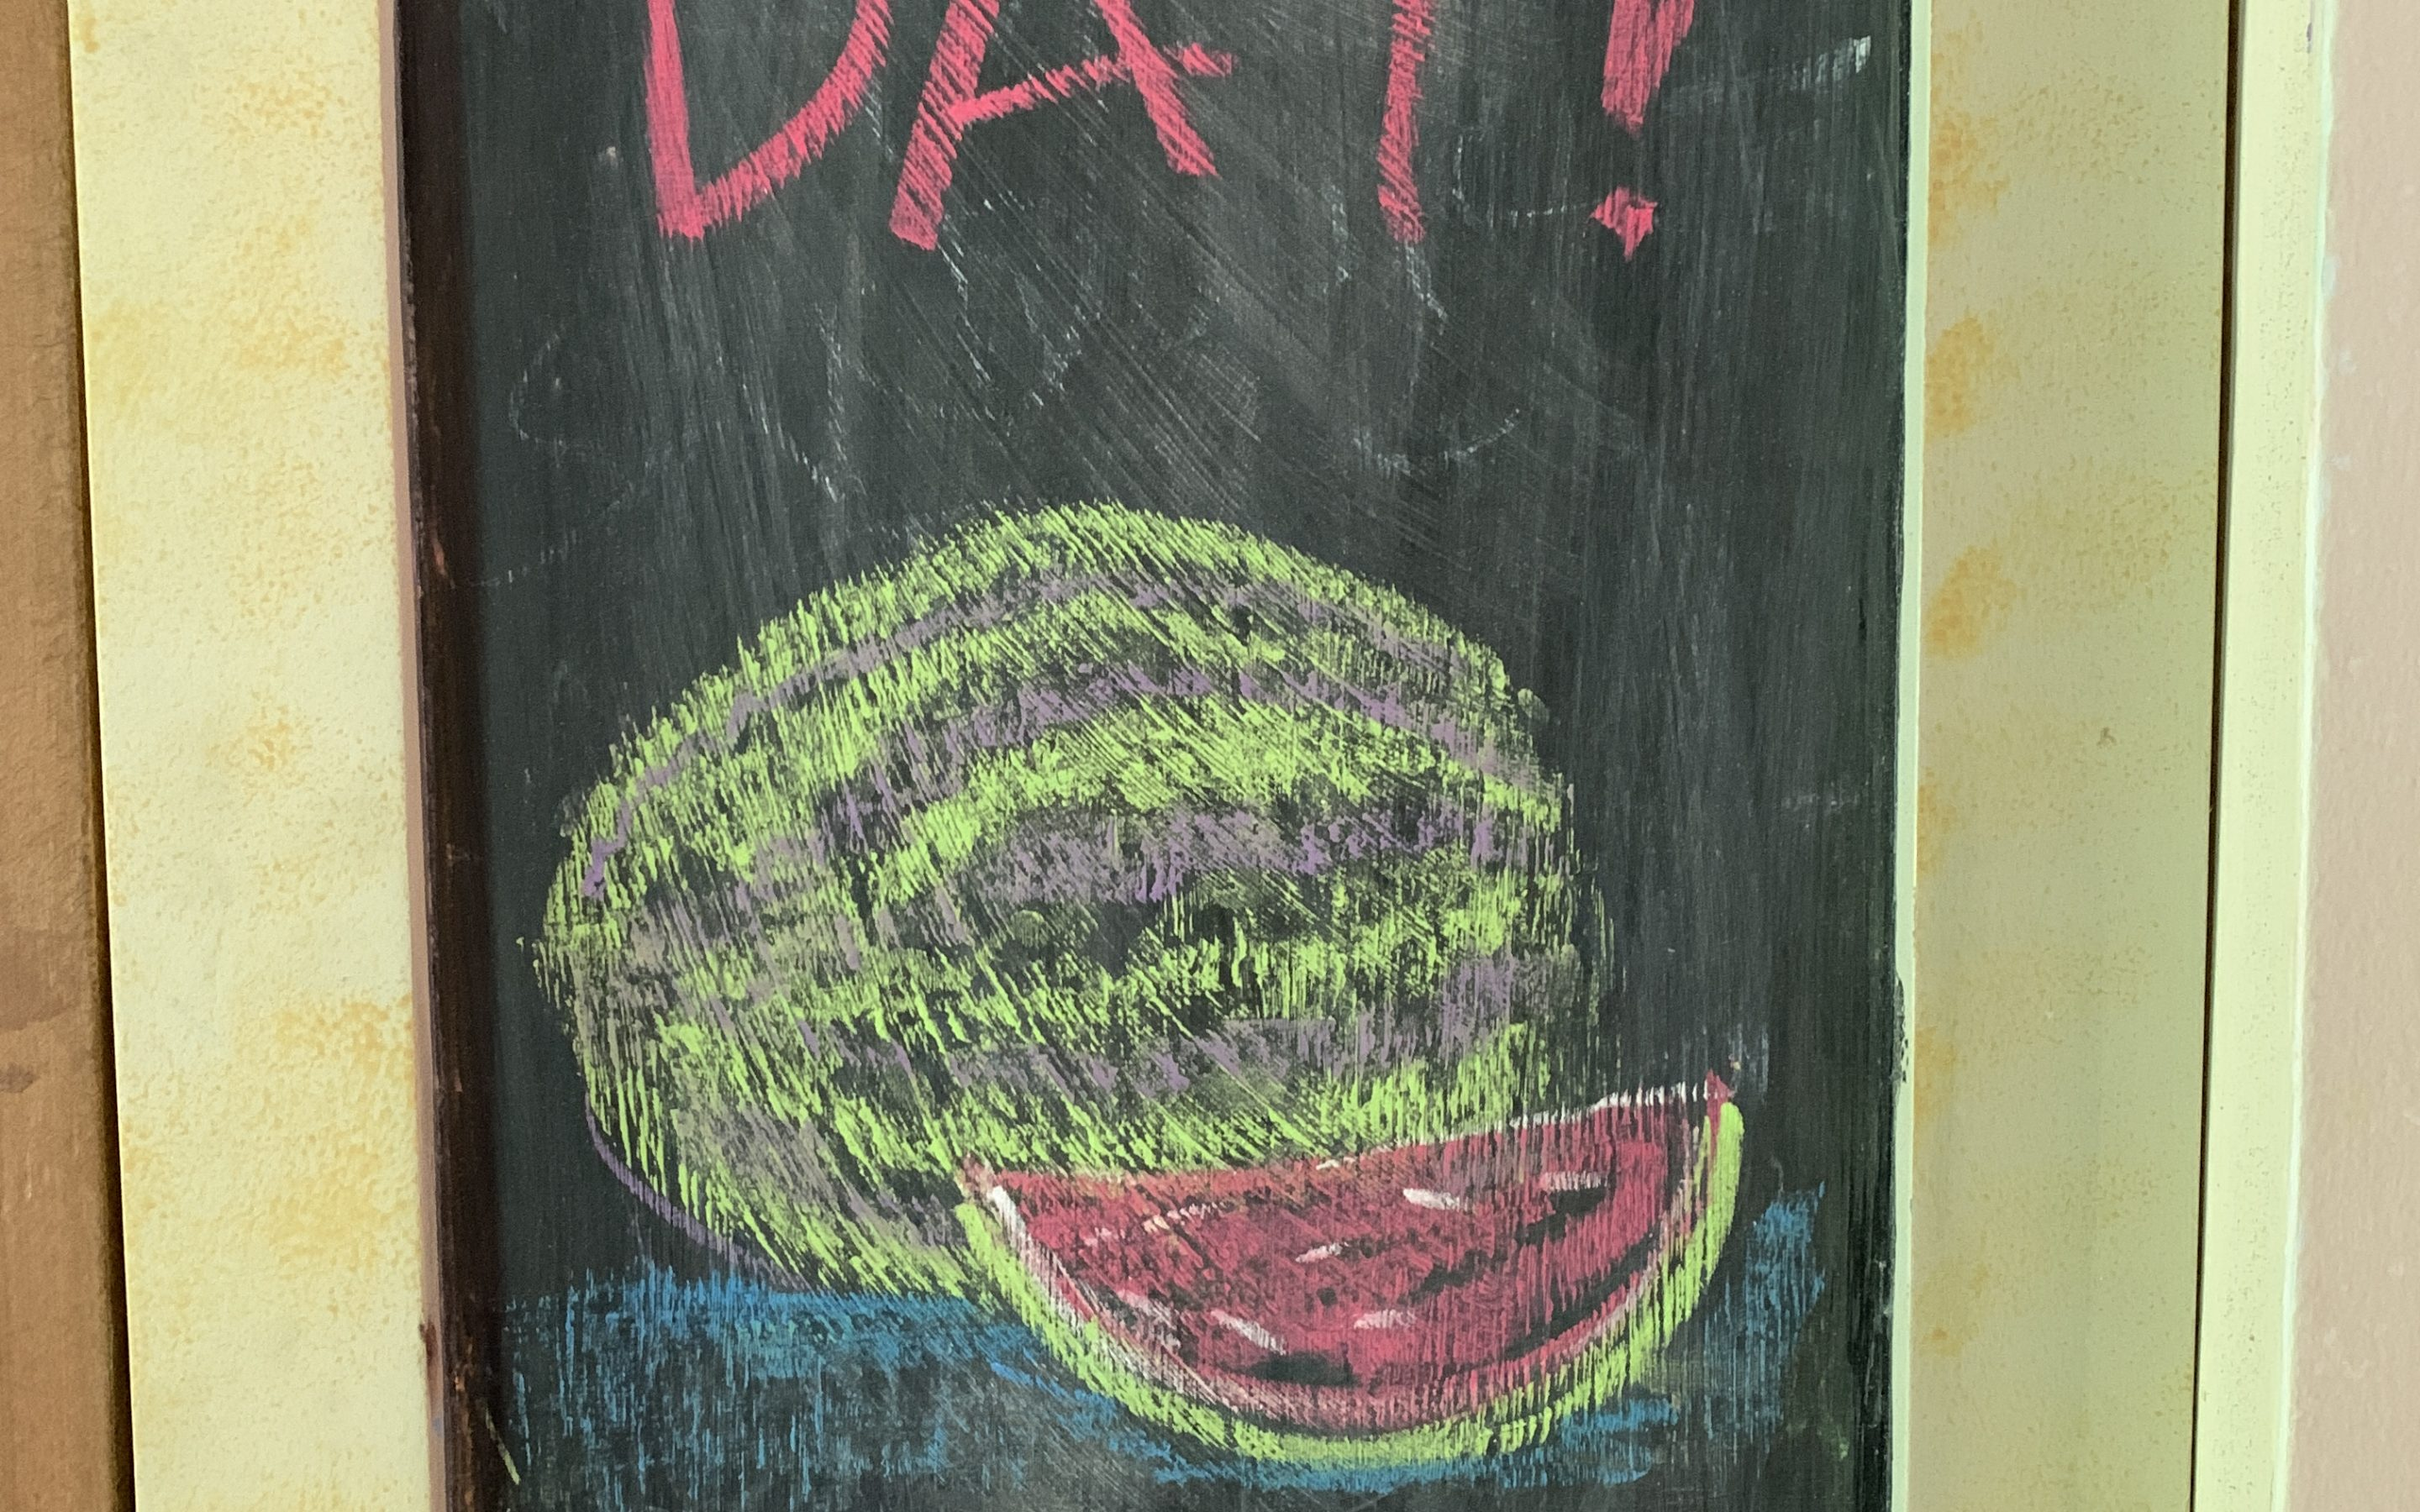 More chalkboard artwork